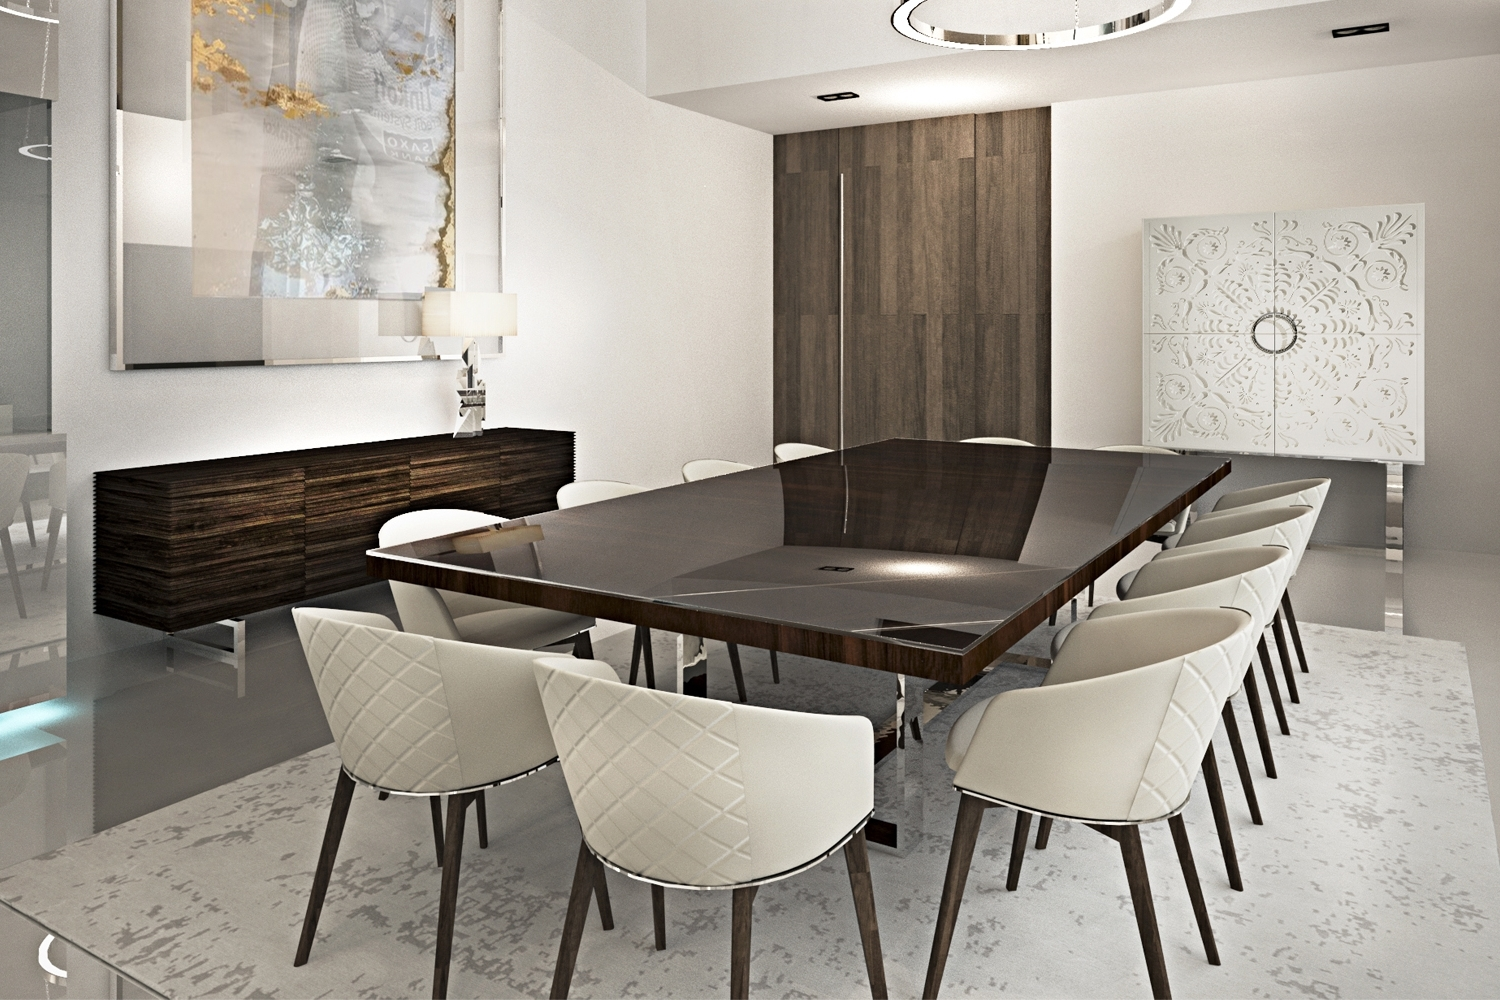 Most Recently Released Contemporary Dining Tables Sets Intended For Luxury Dining Room Sets (View 15 of 25)